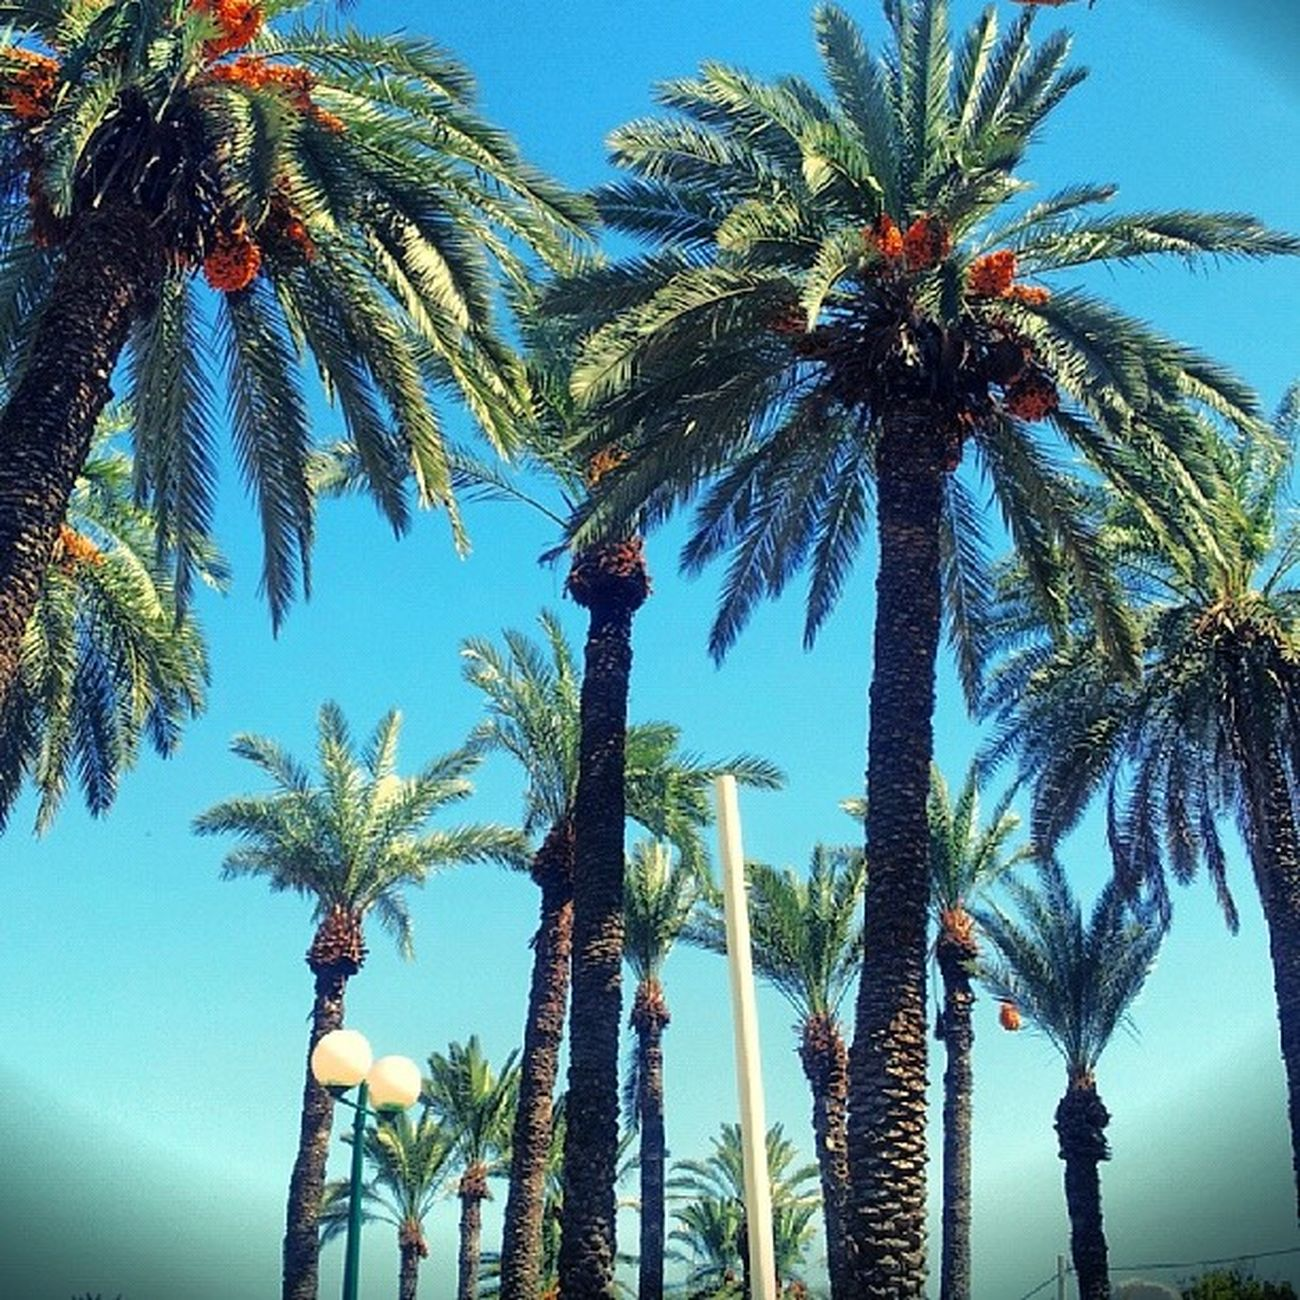 Tybirias Israel Fun Love Palm Tree Sun Relax Breath Hollyland Kineret Sea of galilie Jordan river Come Soon Travelingram